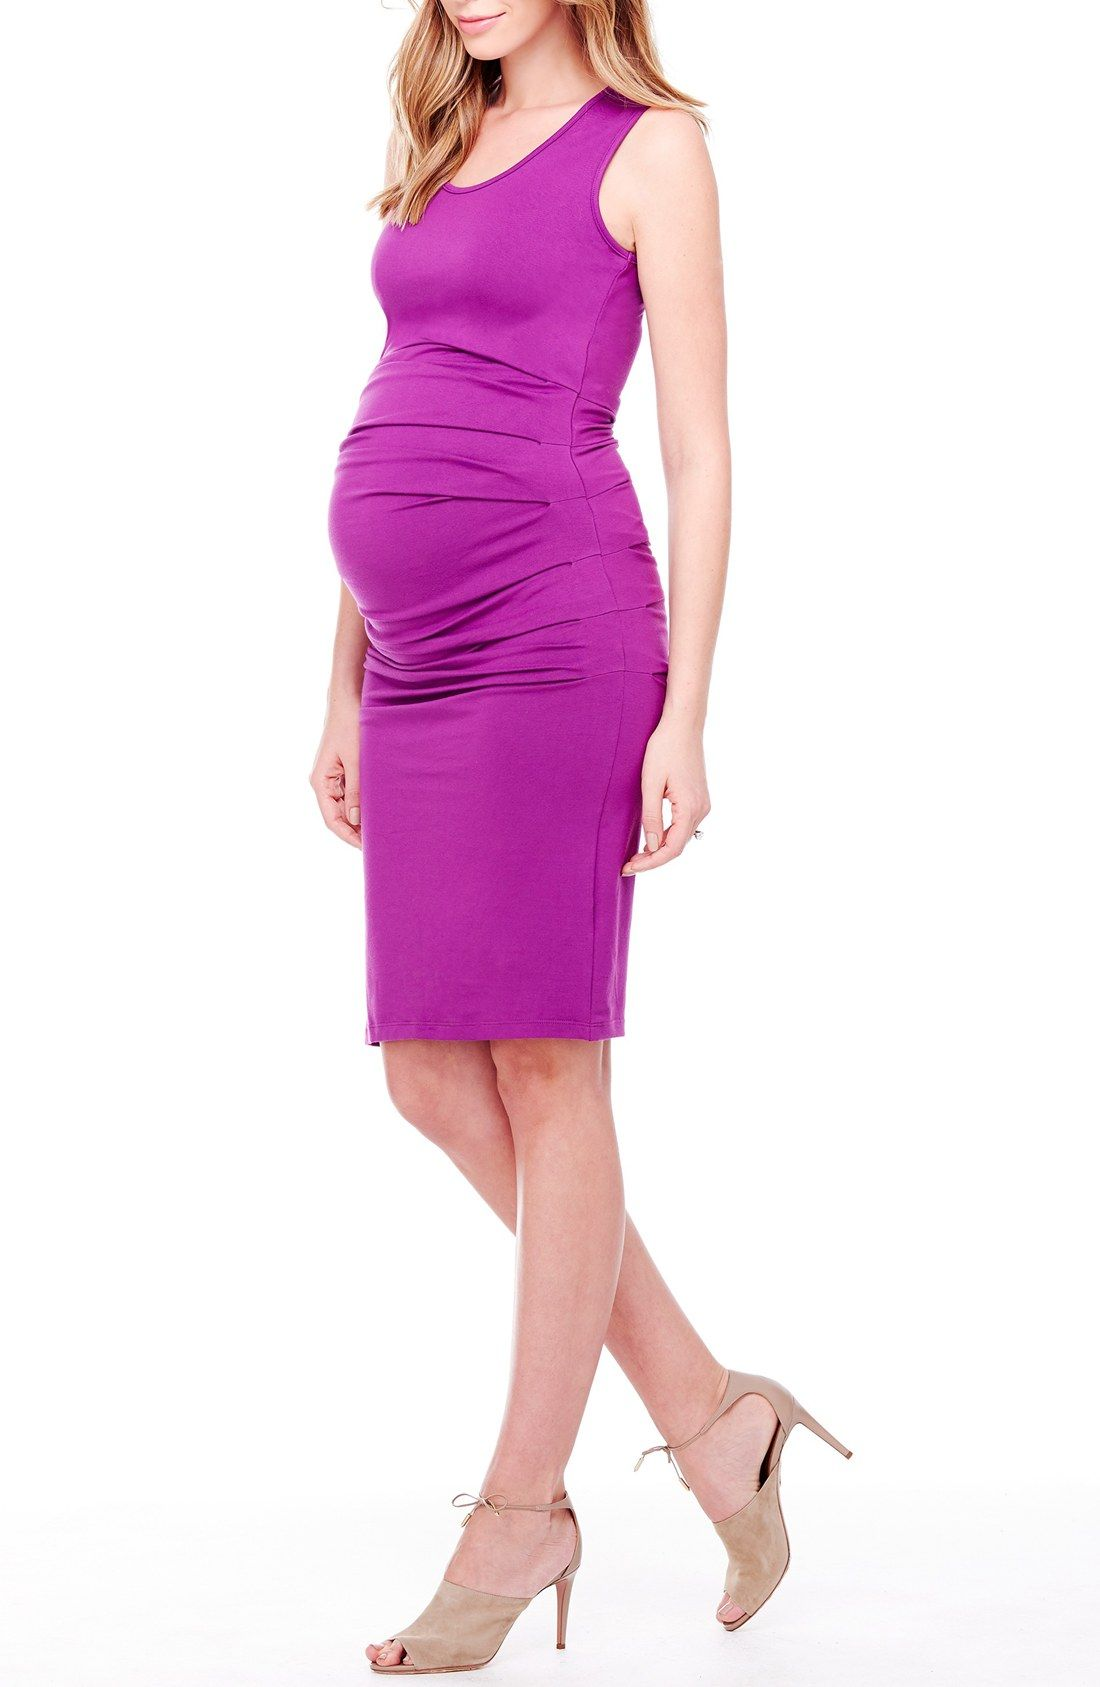 Maternity dresses formal lace cocktail evening nordstrom maternity dresses formal lace cocktail evening nordstrom ombrellifo Choice Image